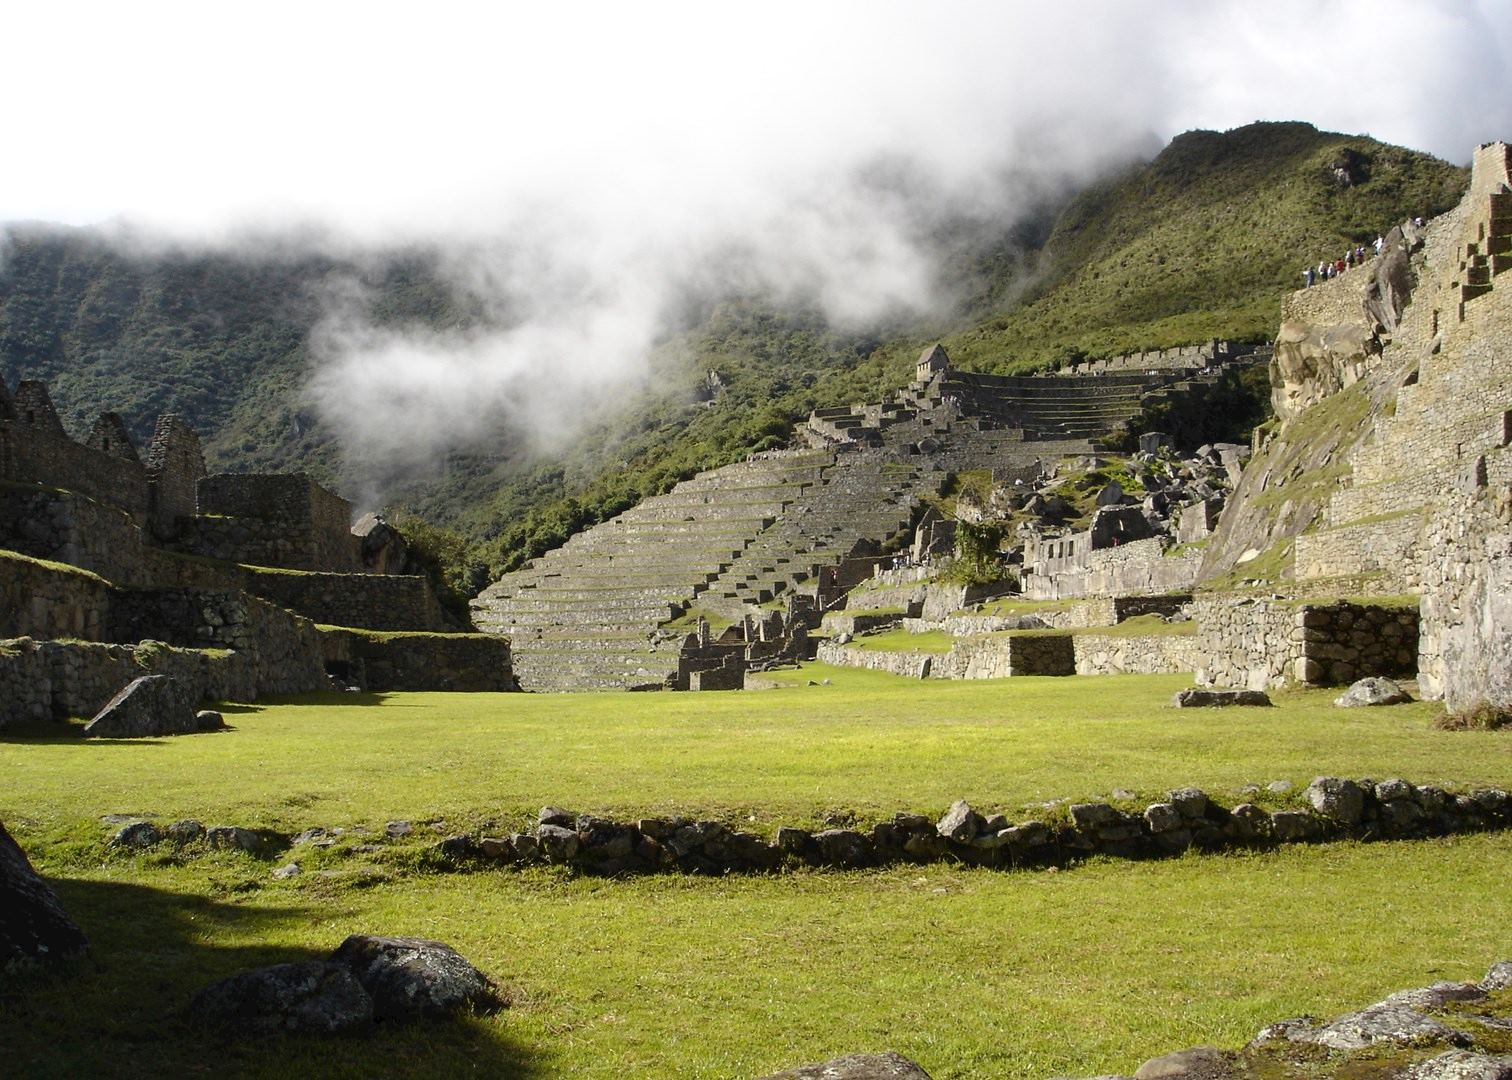 Trekking to Machu Picchu | Travel guide | Audley Travel